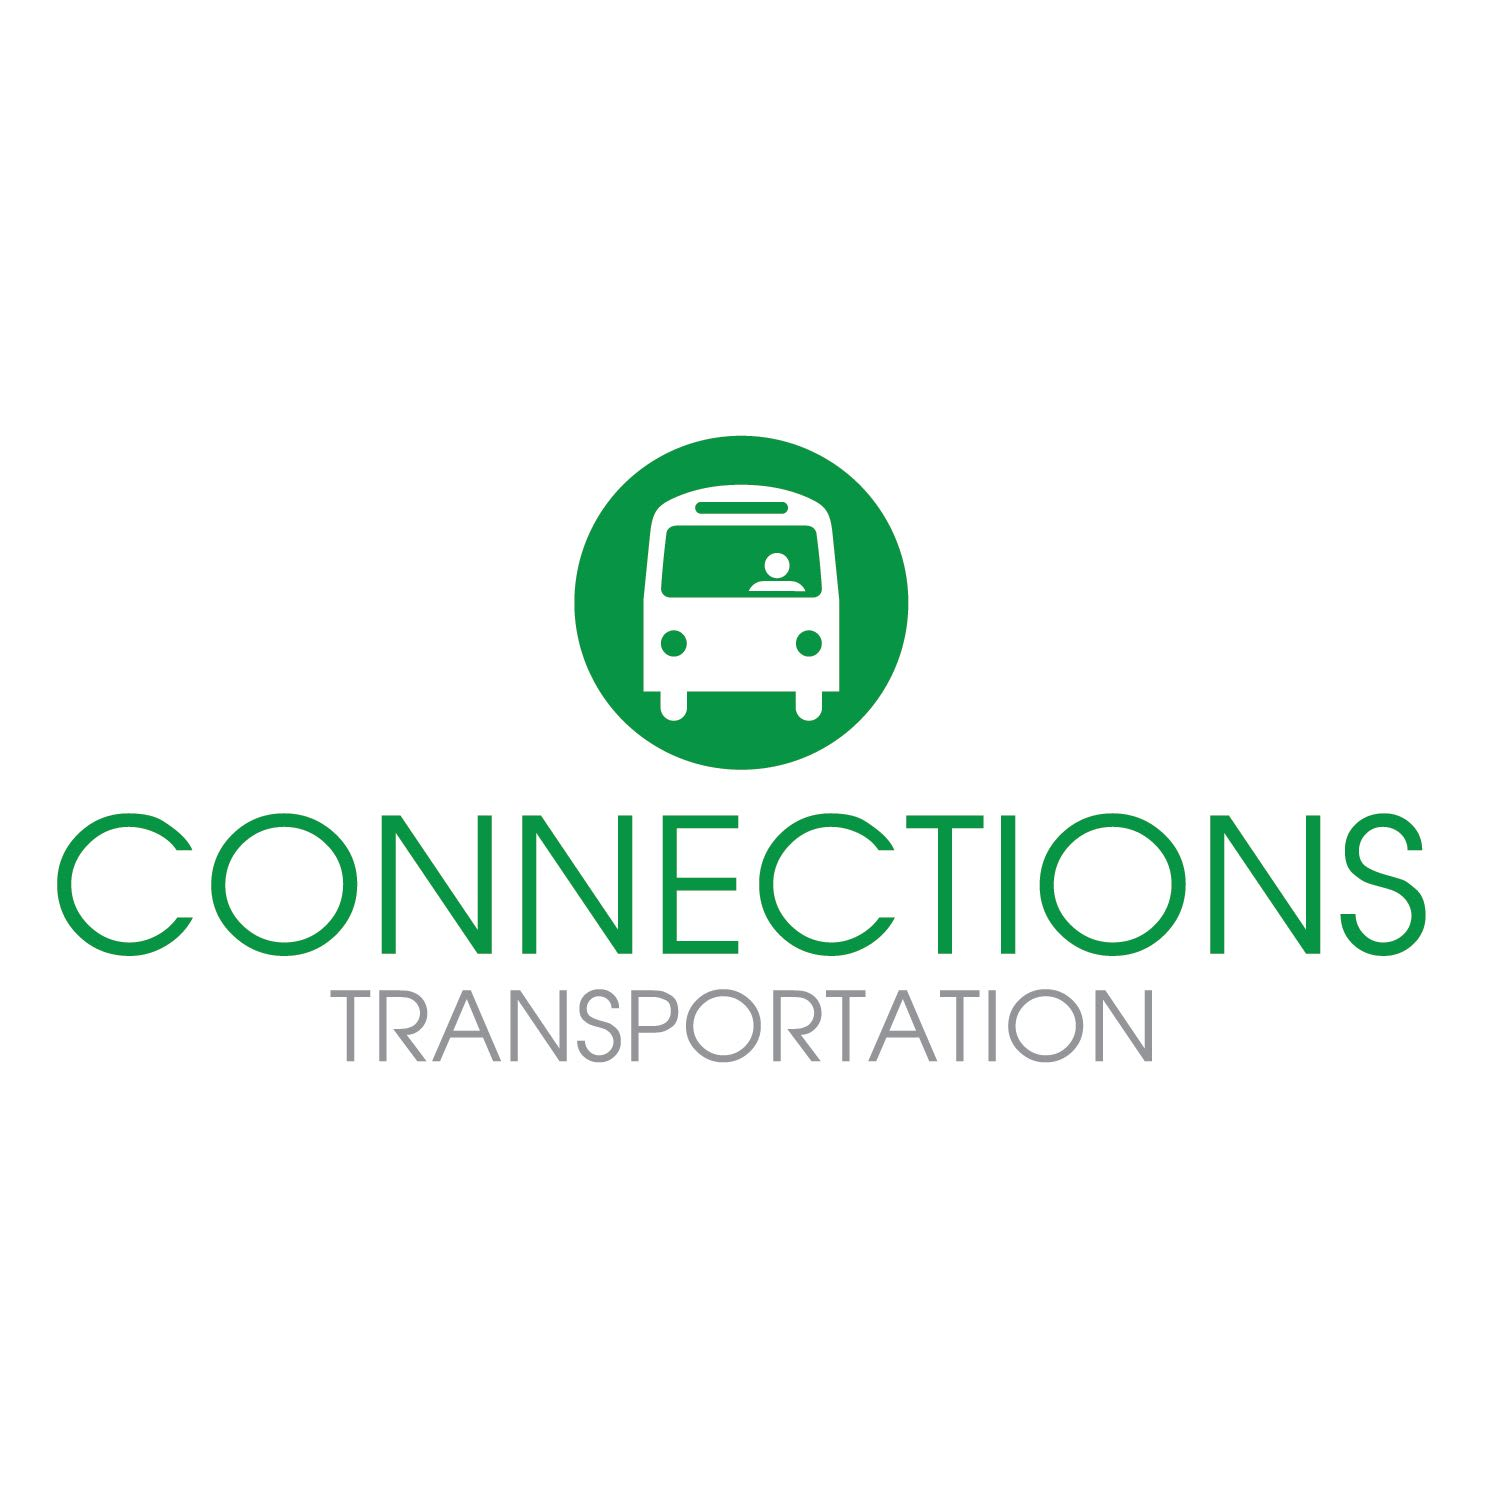 Connections transportation program at Blue Ridge Assisted Living